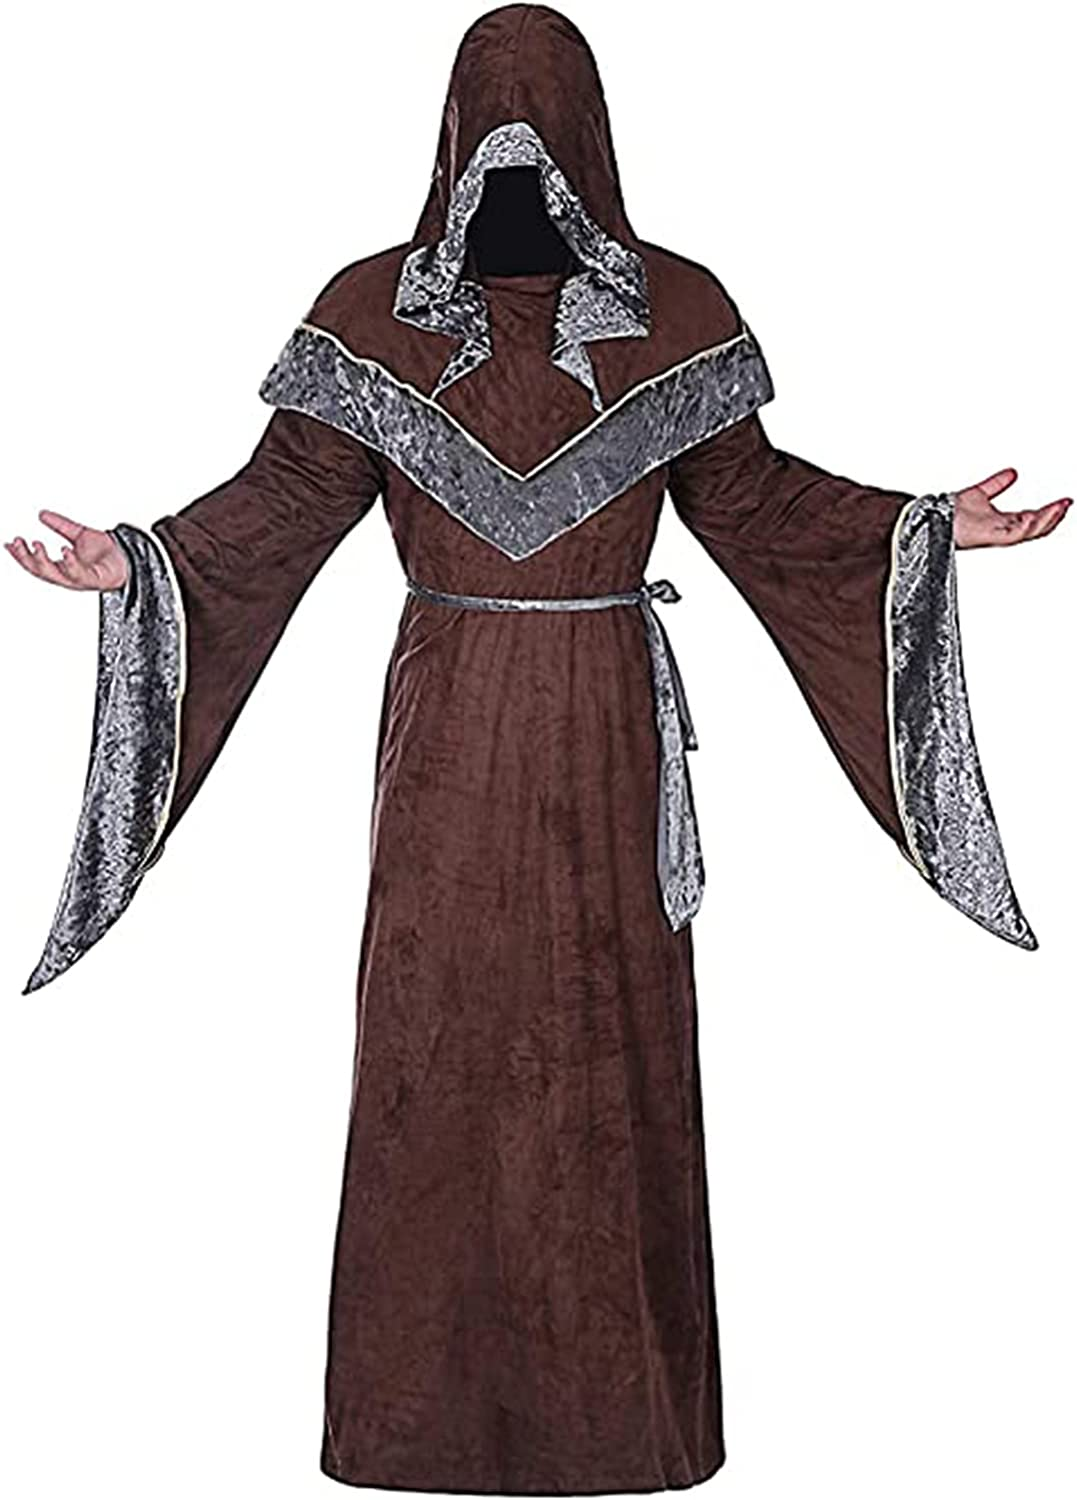 Mens Halloween Costume Hooded Sorcerer Brand Cheap Sale Venue Price reduction Vintage Medieval Robe Re